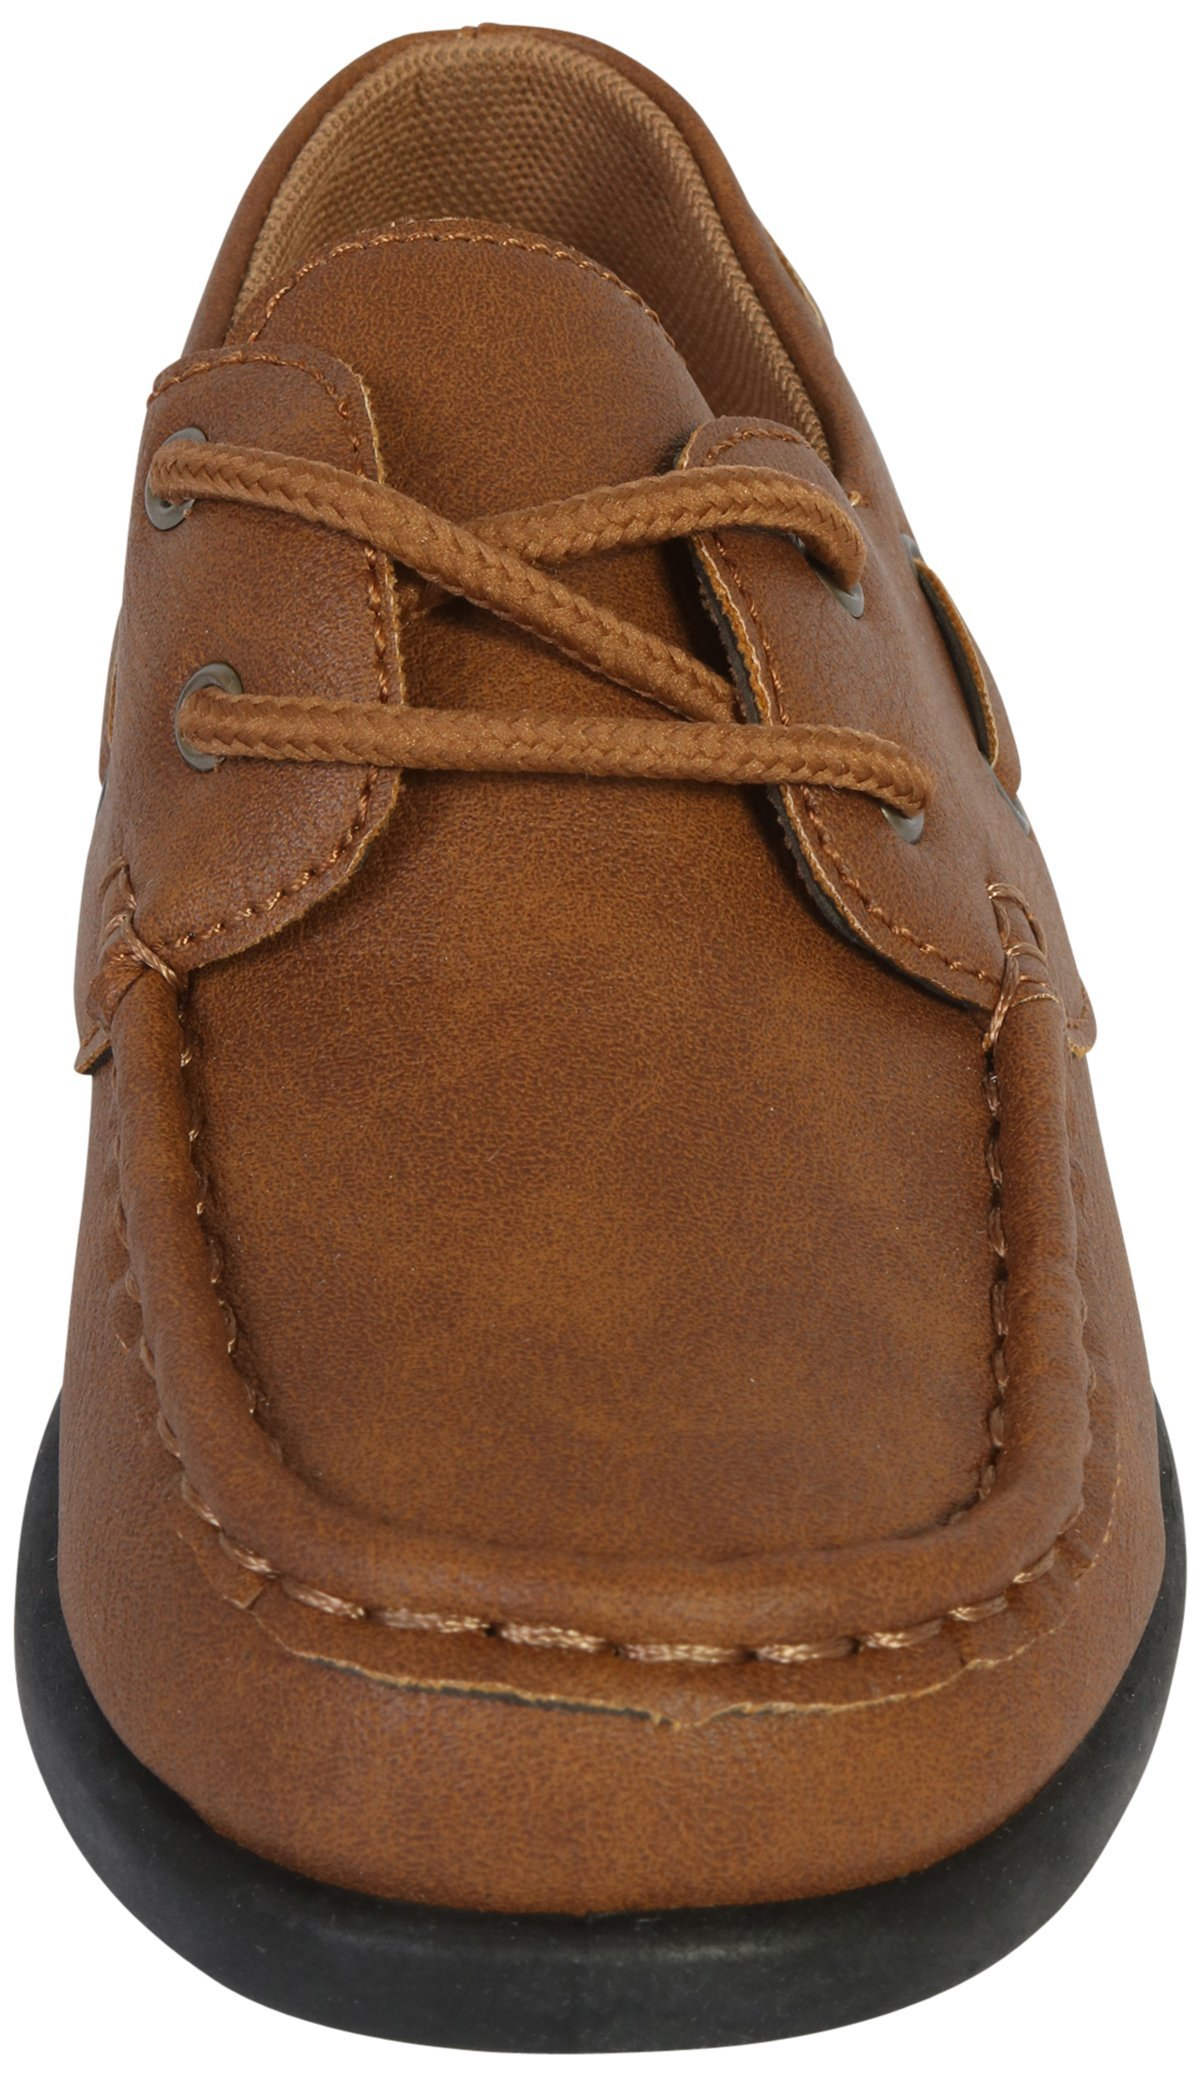 Jodano Collection Boys Slip on Boat Shoes with Memory Foam Insole, Tan, 10 M US Toddler' by Jodano Collection (Image #6)